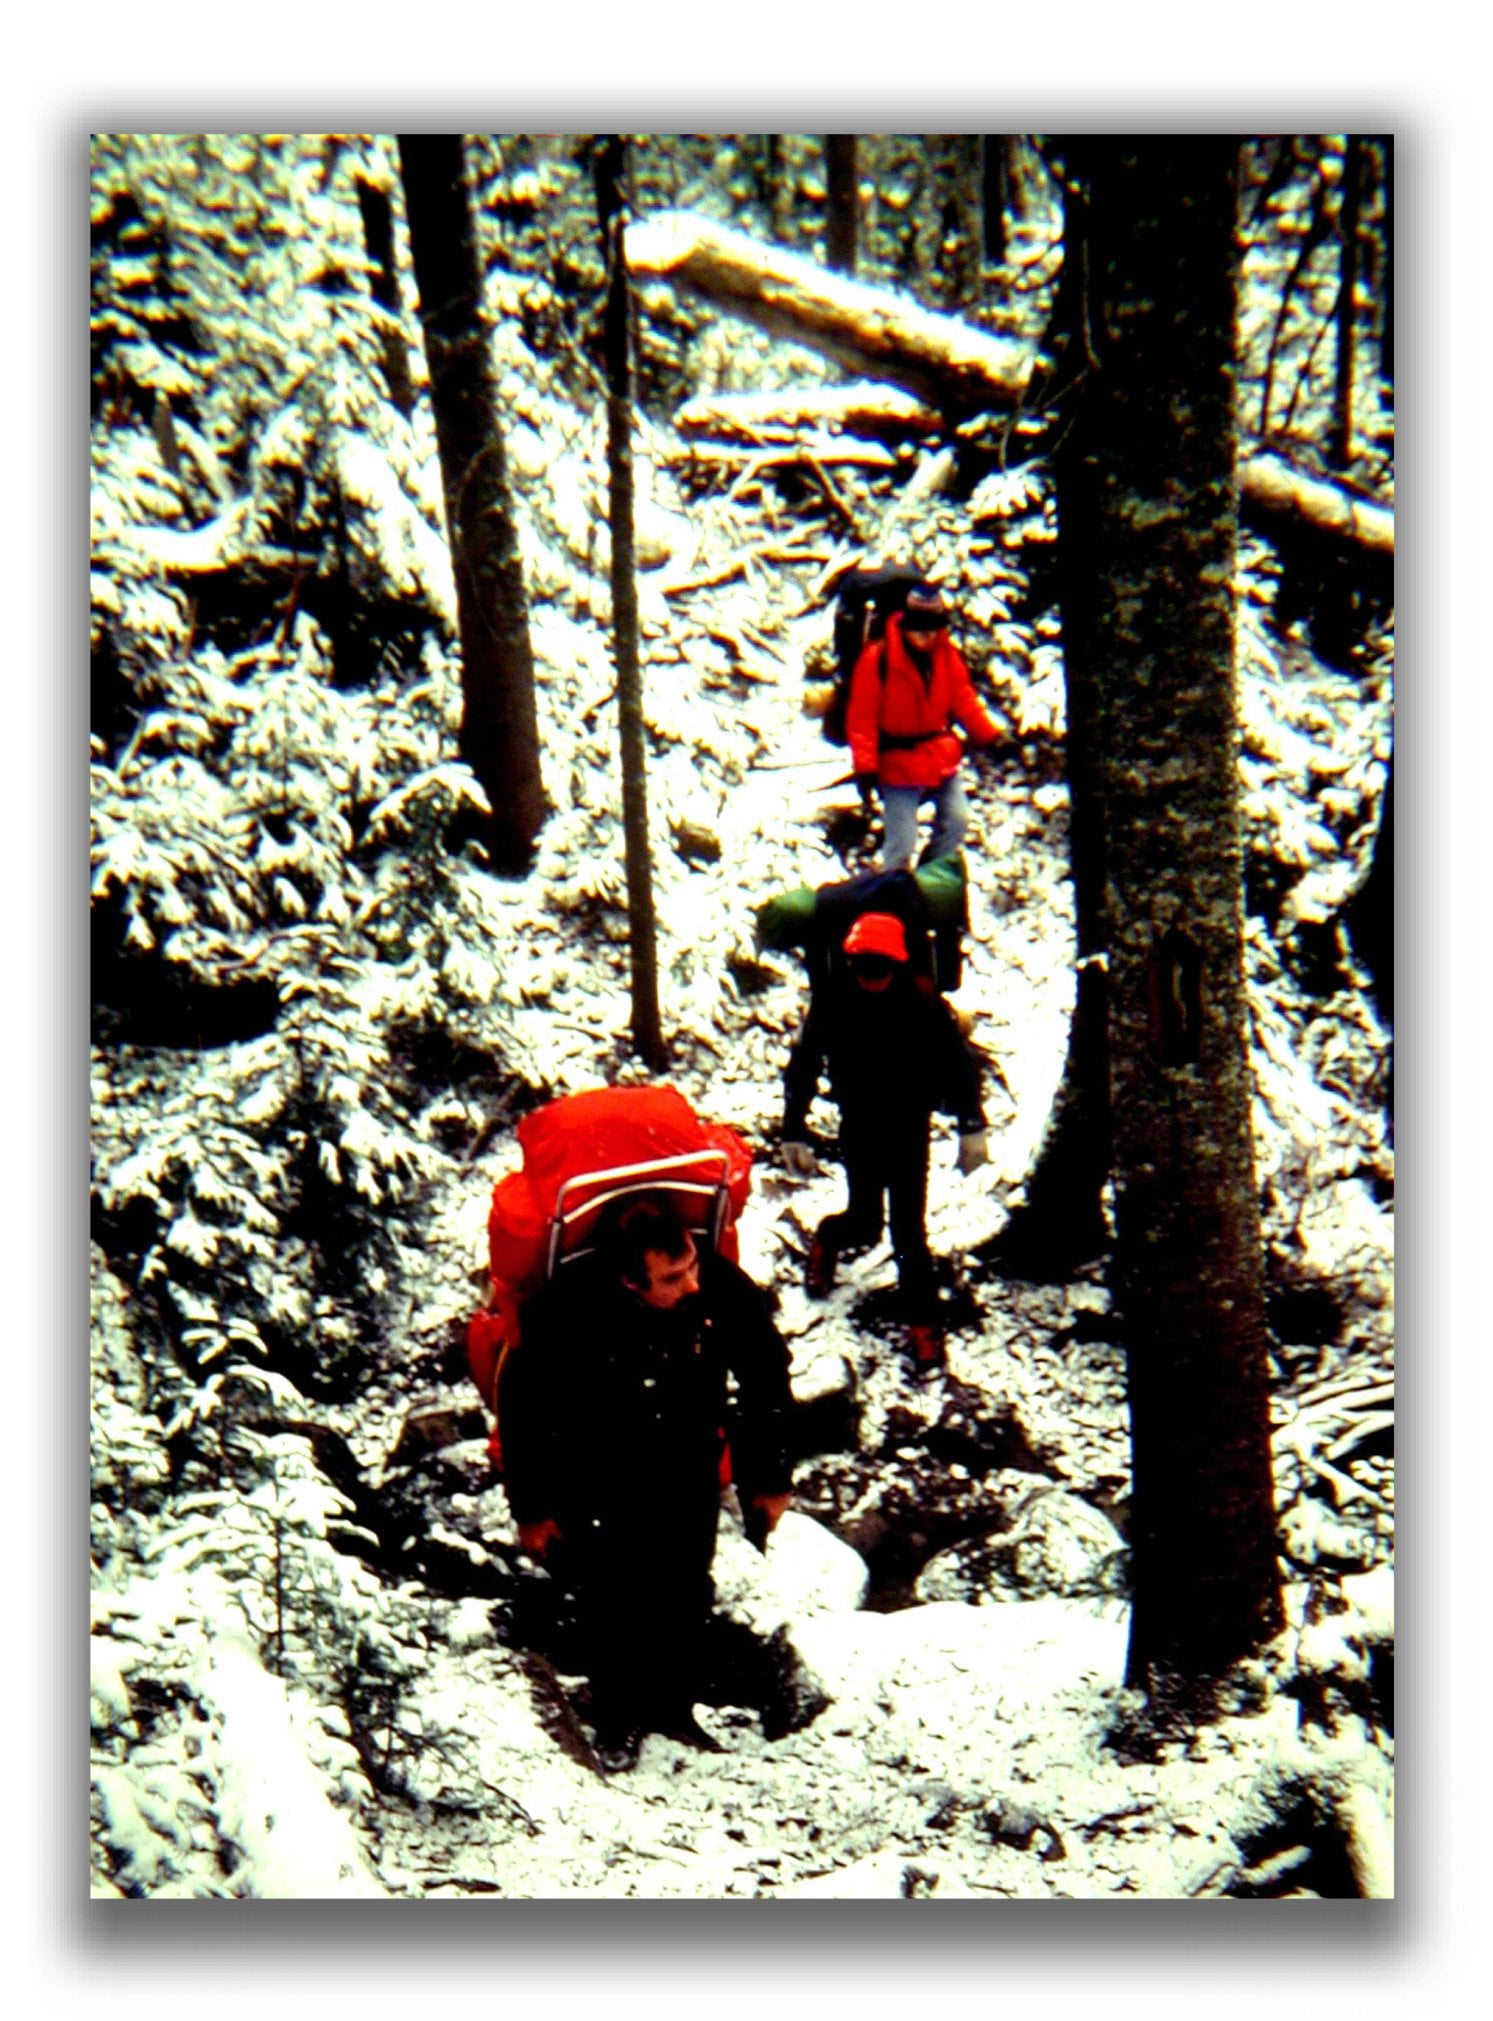 Backtracking,trying to find the trail in the northern Presidential Mountains.